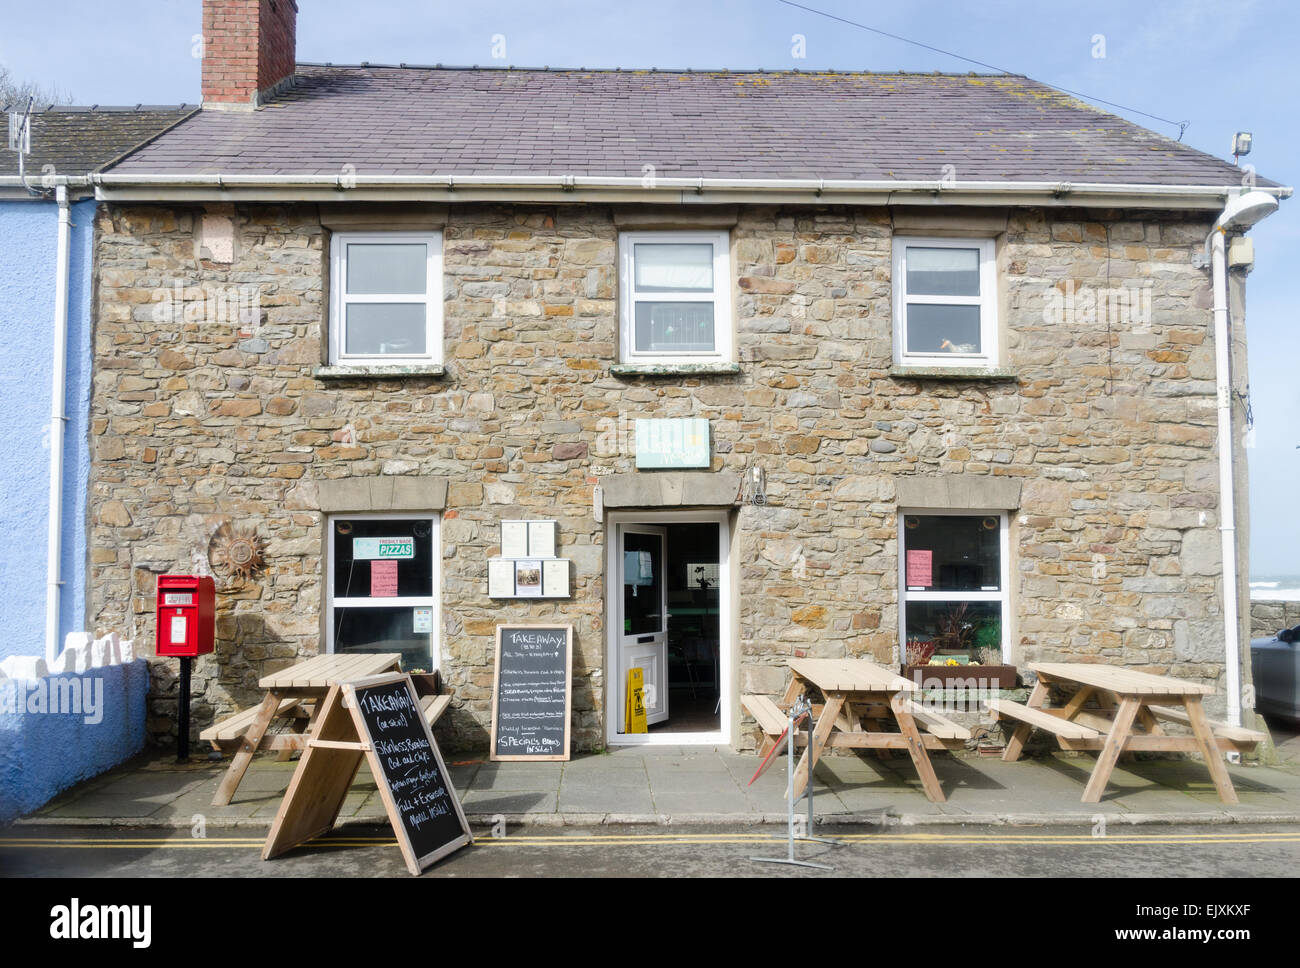 Ceri's Cafe at Captain Morgan's in Little Haven, Pembrokeshire - Stock Image